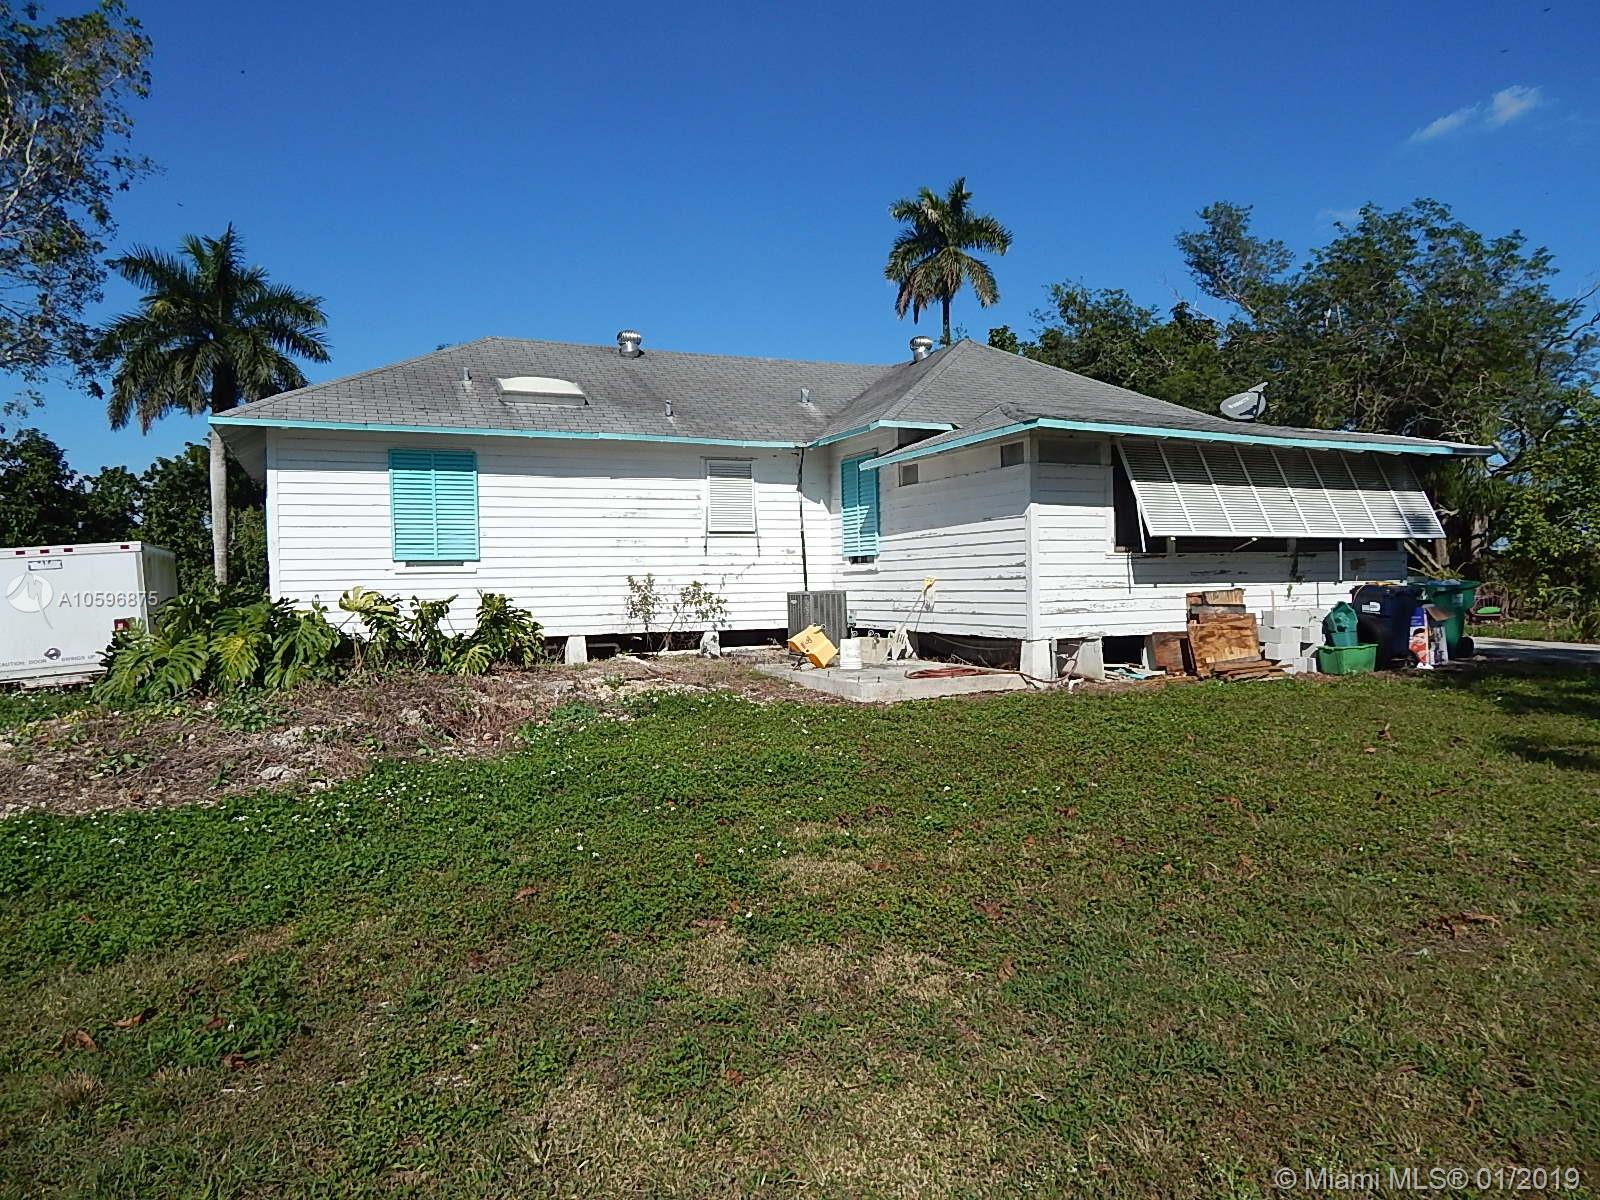 19930 SW 256th St, Homestead, Florida